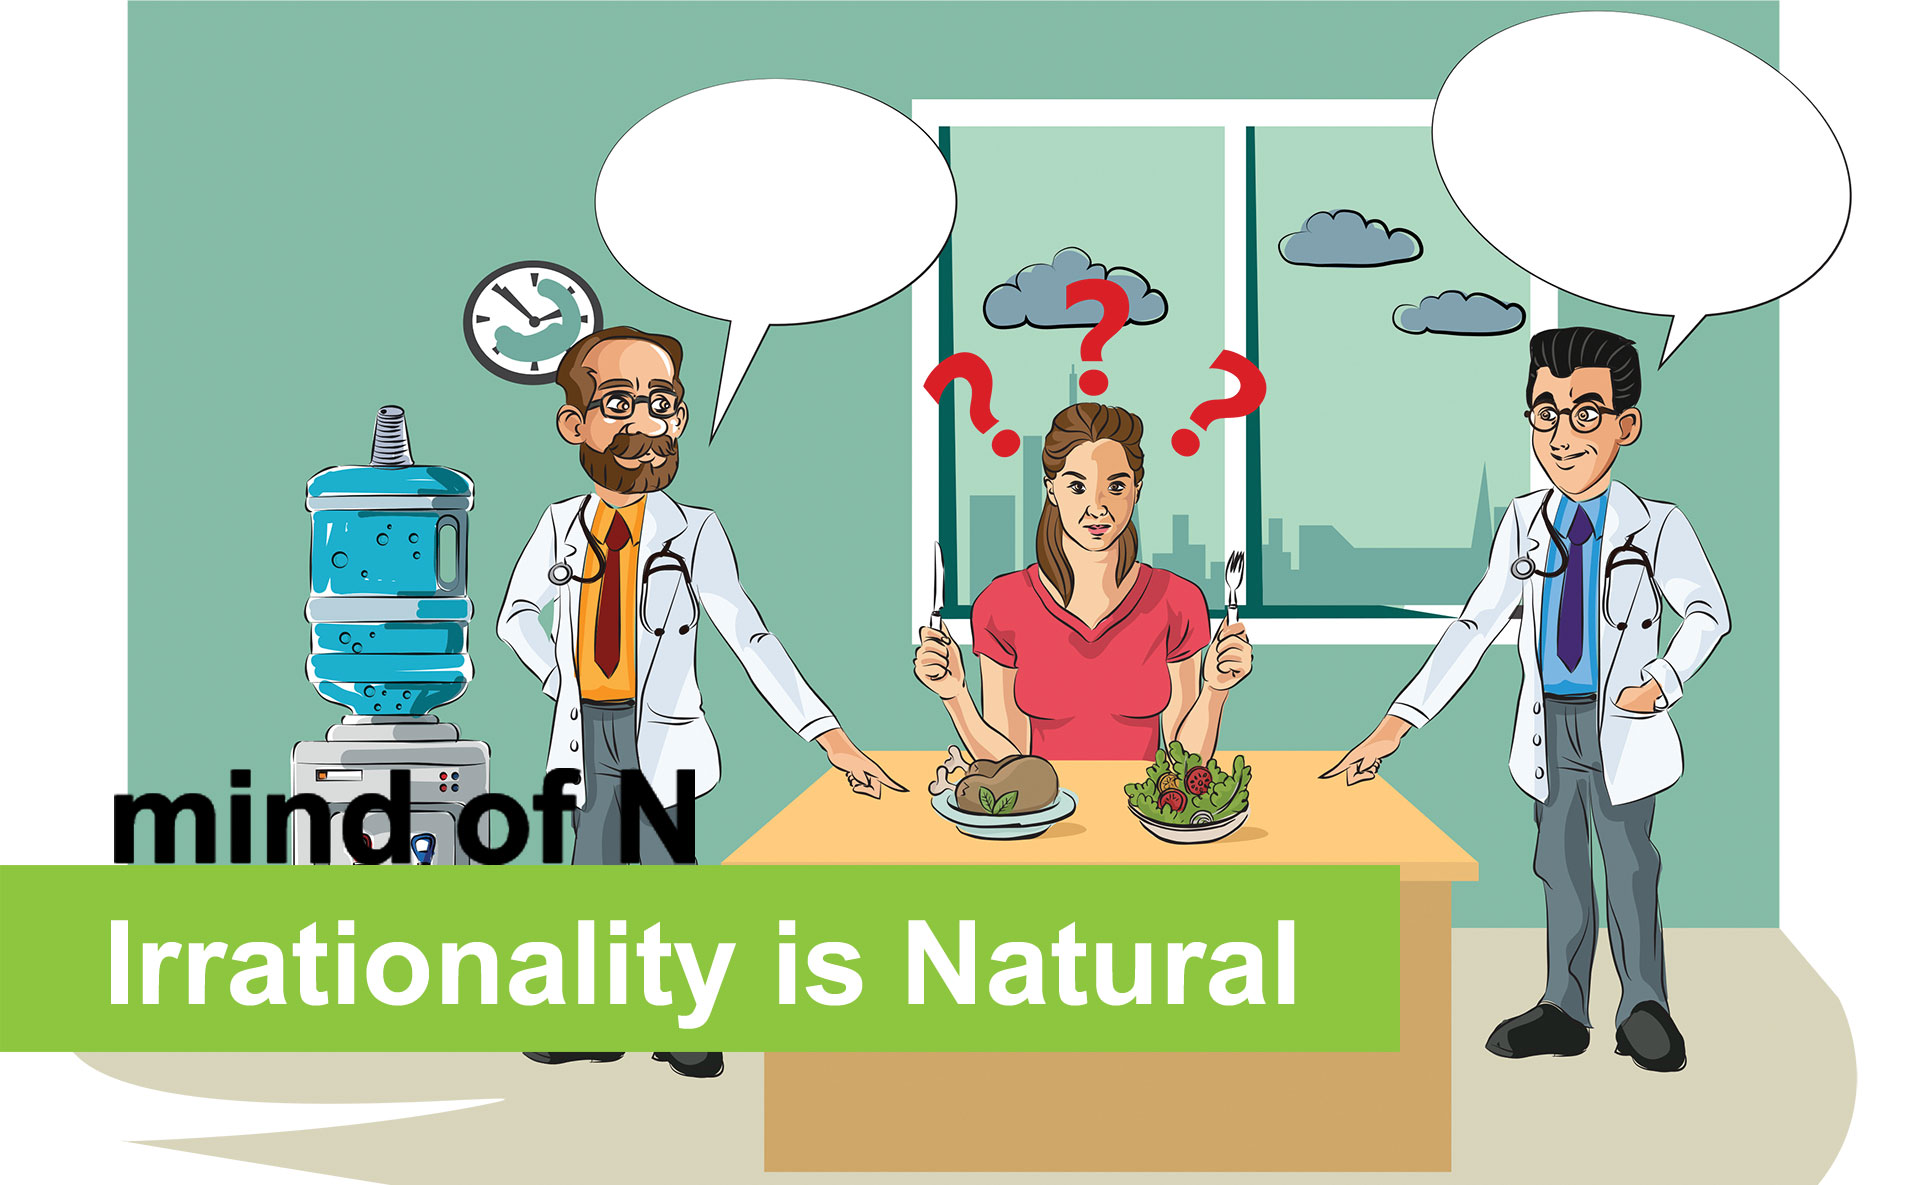 Irrationality is Natural